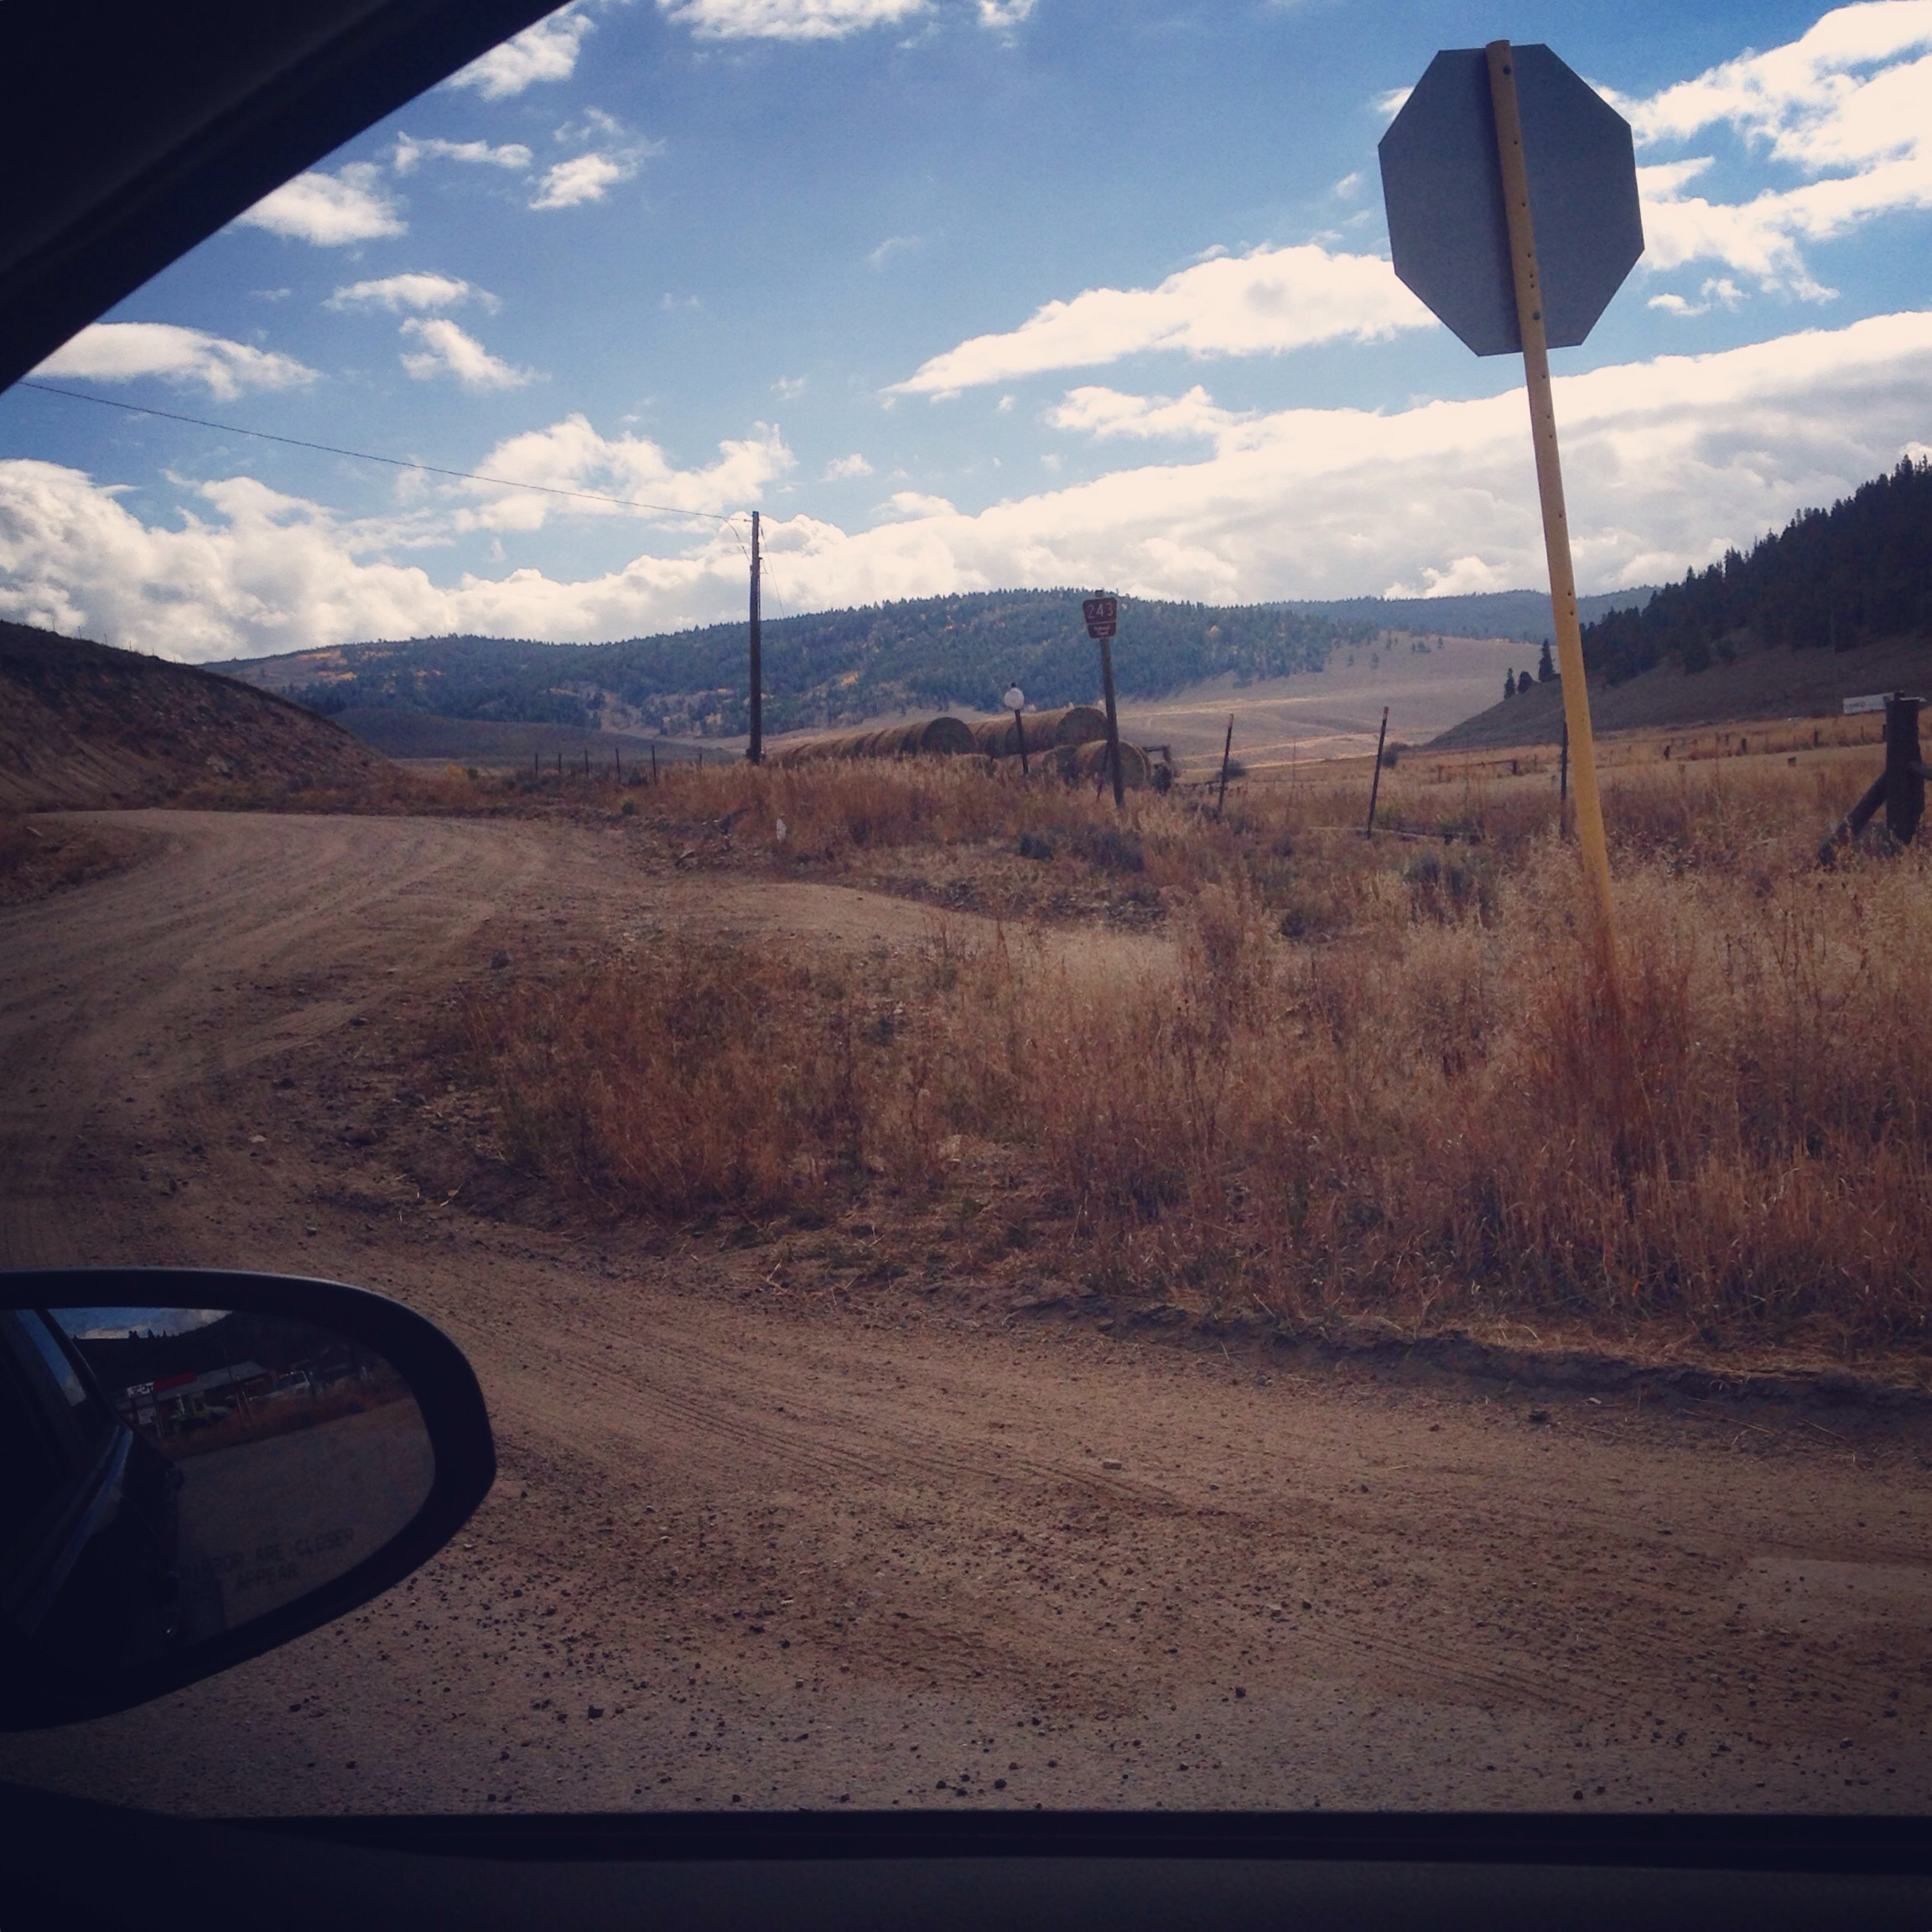 Staring up at the dirt road that led to Marshall Pass from a car window, knowing that biking over 1,800 miles to get there made me appreciate it in a way that a motorist never could.